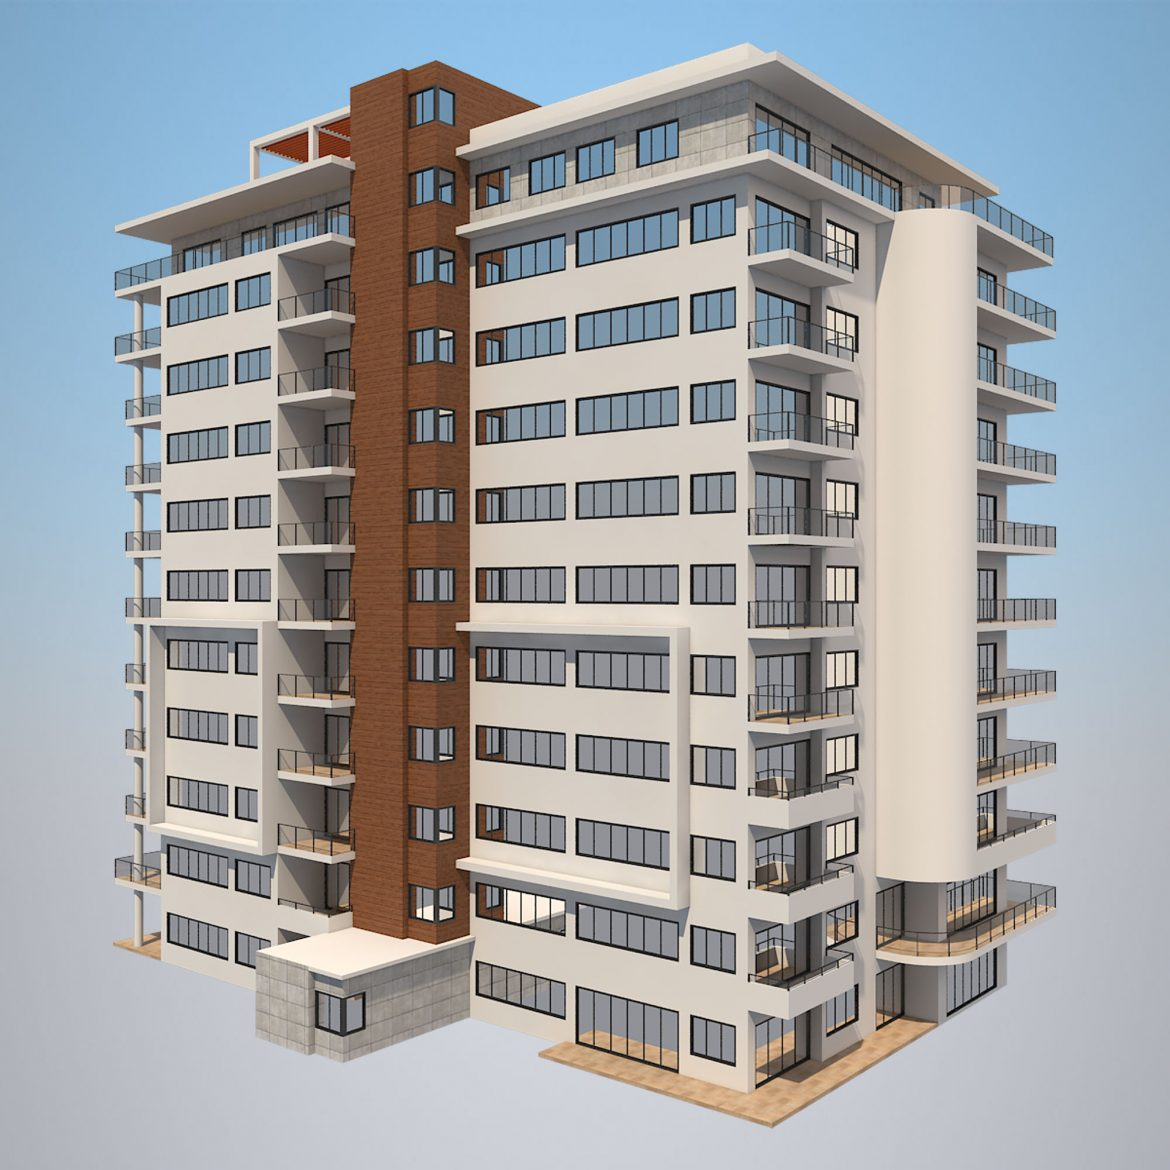 apartment building_61 3d model 3ds blend c4d fbx max ds max plugin ma mb obj 303407